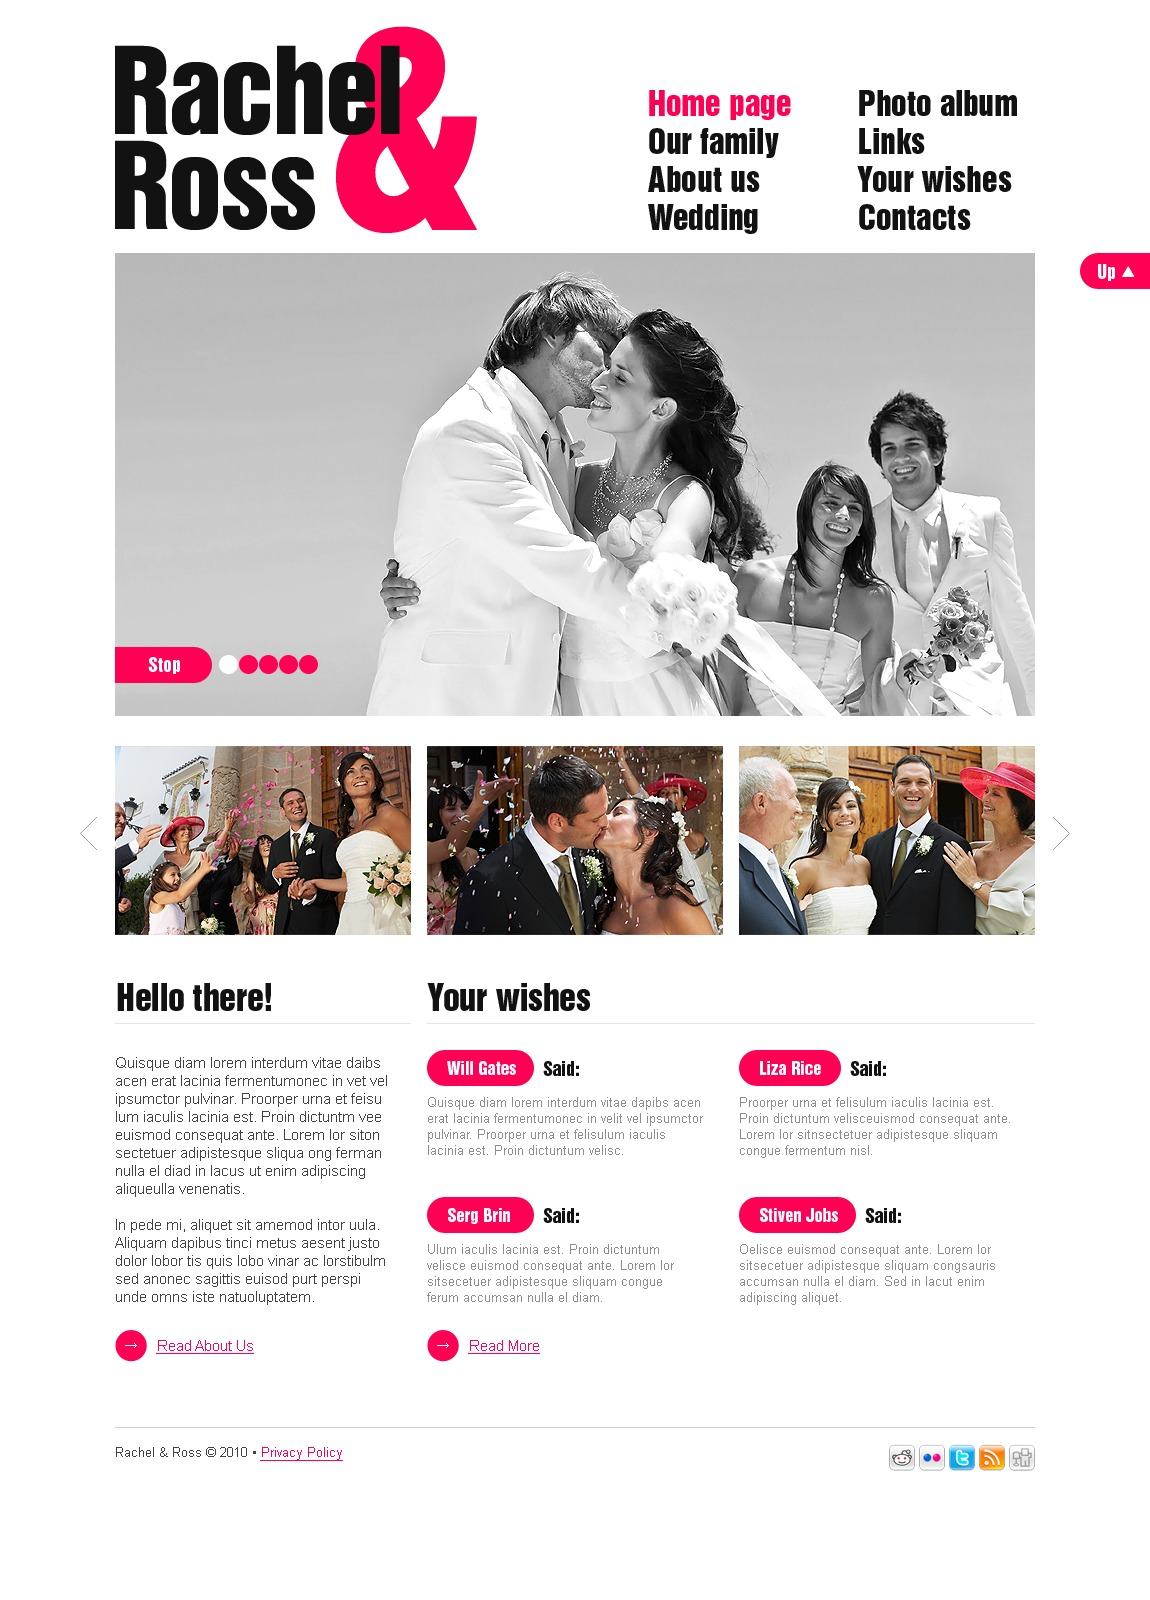 The Rachel Ross Wedding PSD Design 54059, one of the best PSD templates of its kind (wedding, most popular, wide, jquery), also known as Rachel Ross wedding PSD template, album PSD template, page PSD template, photos PSD template, gallery PSD template, husband PSD template, wife PSD template, history PSD template, first PSD template, dating PSD template, engagement PSD template, bride PSD template, groom PSD template, family PSD template, ceremony PSD template, rings PSD template, flowers PSD template, guestbook PSD template, baby PSD template, friends PSD template, happiness PSD template, love PSD template, heart PSD template, couple PSD template, partners PSD template, veil PSD template, success PSD template, lover PSD template, dress PSD template, sweetheart PSD template, honey PSD template, moon PSD template, marriage and related with Rachel Ross wedding, album, page, photos, gallery, husband, wife, history, first, dating, engagement, bride, groom, family, ceremony, rings, flowers, guestbook, baby, friends, happiness, love, heart, couple, partners, veil, success, lover, dress, sweetheart, honey, moon, marriage, etc.